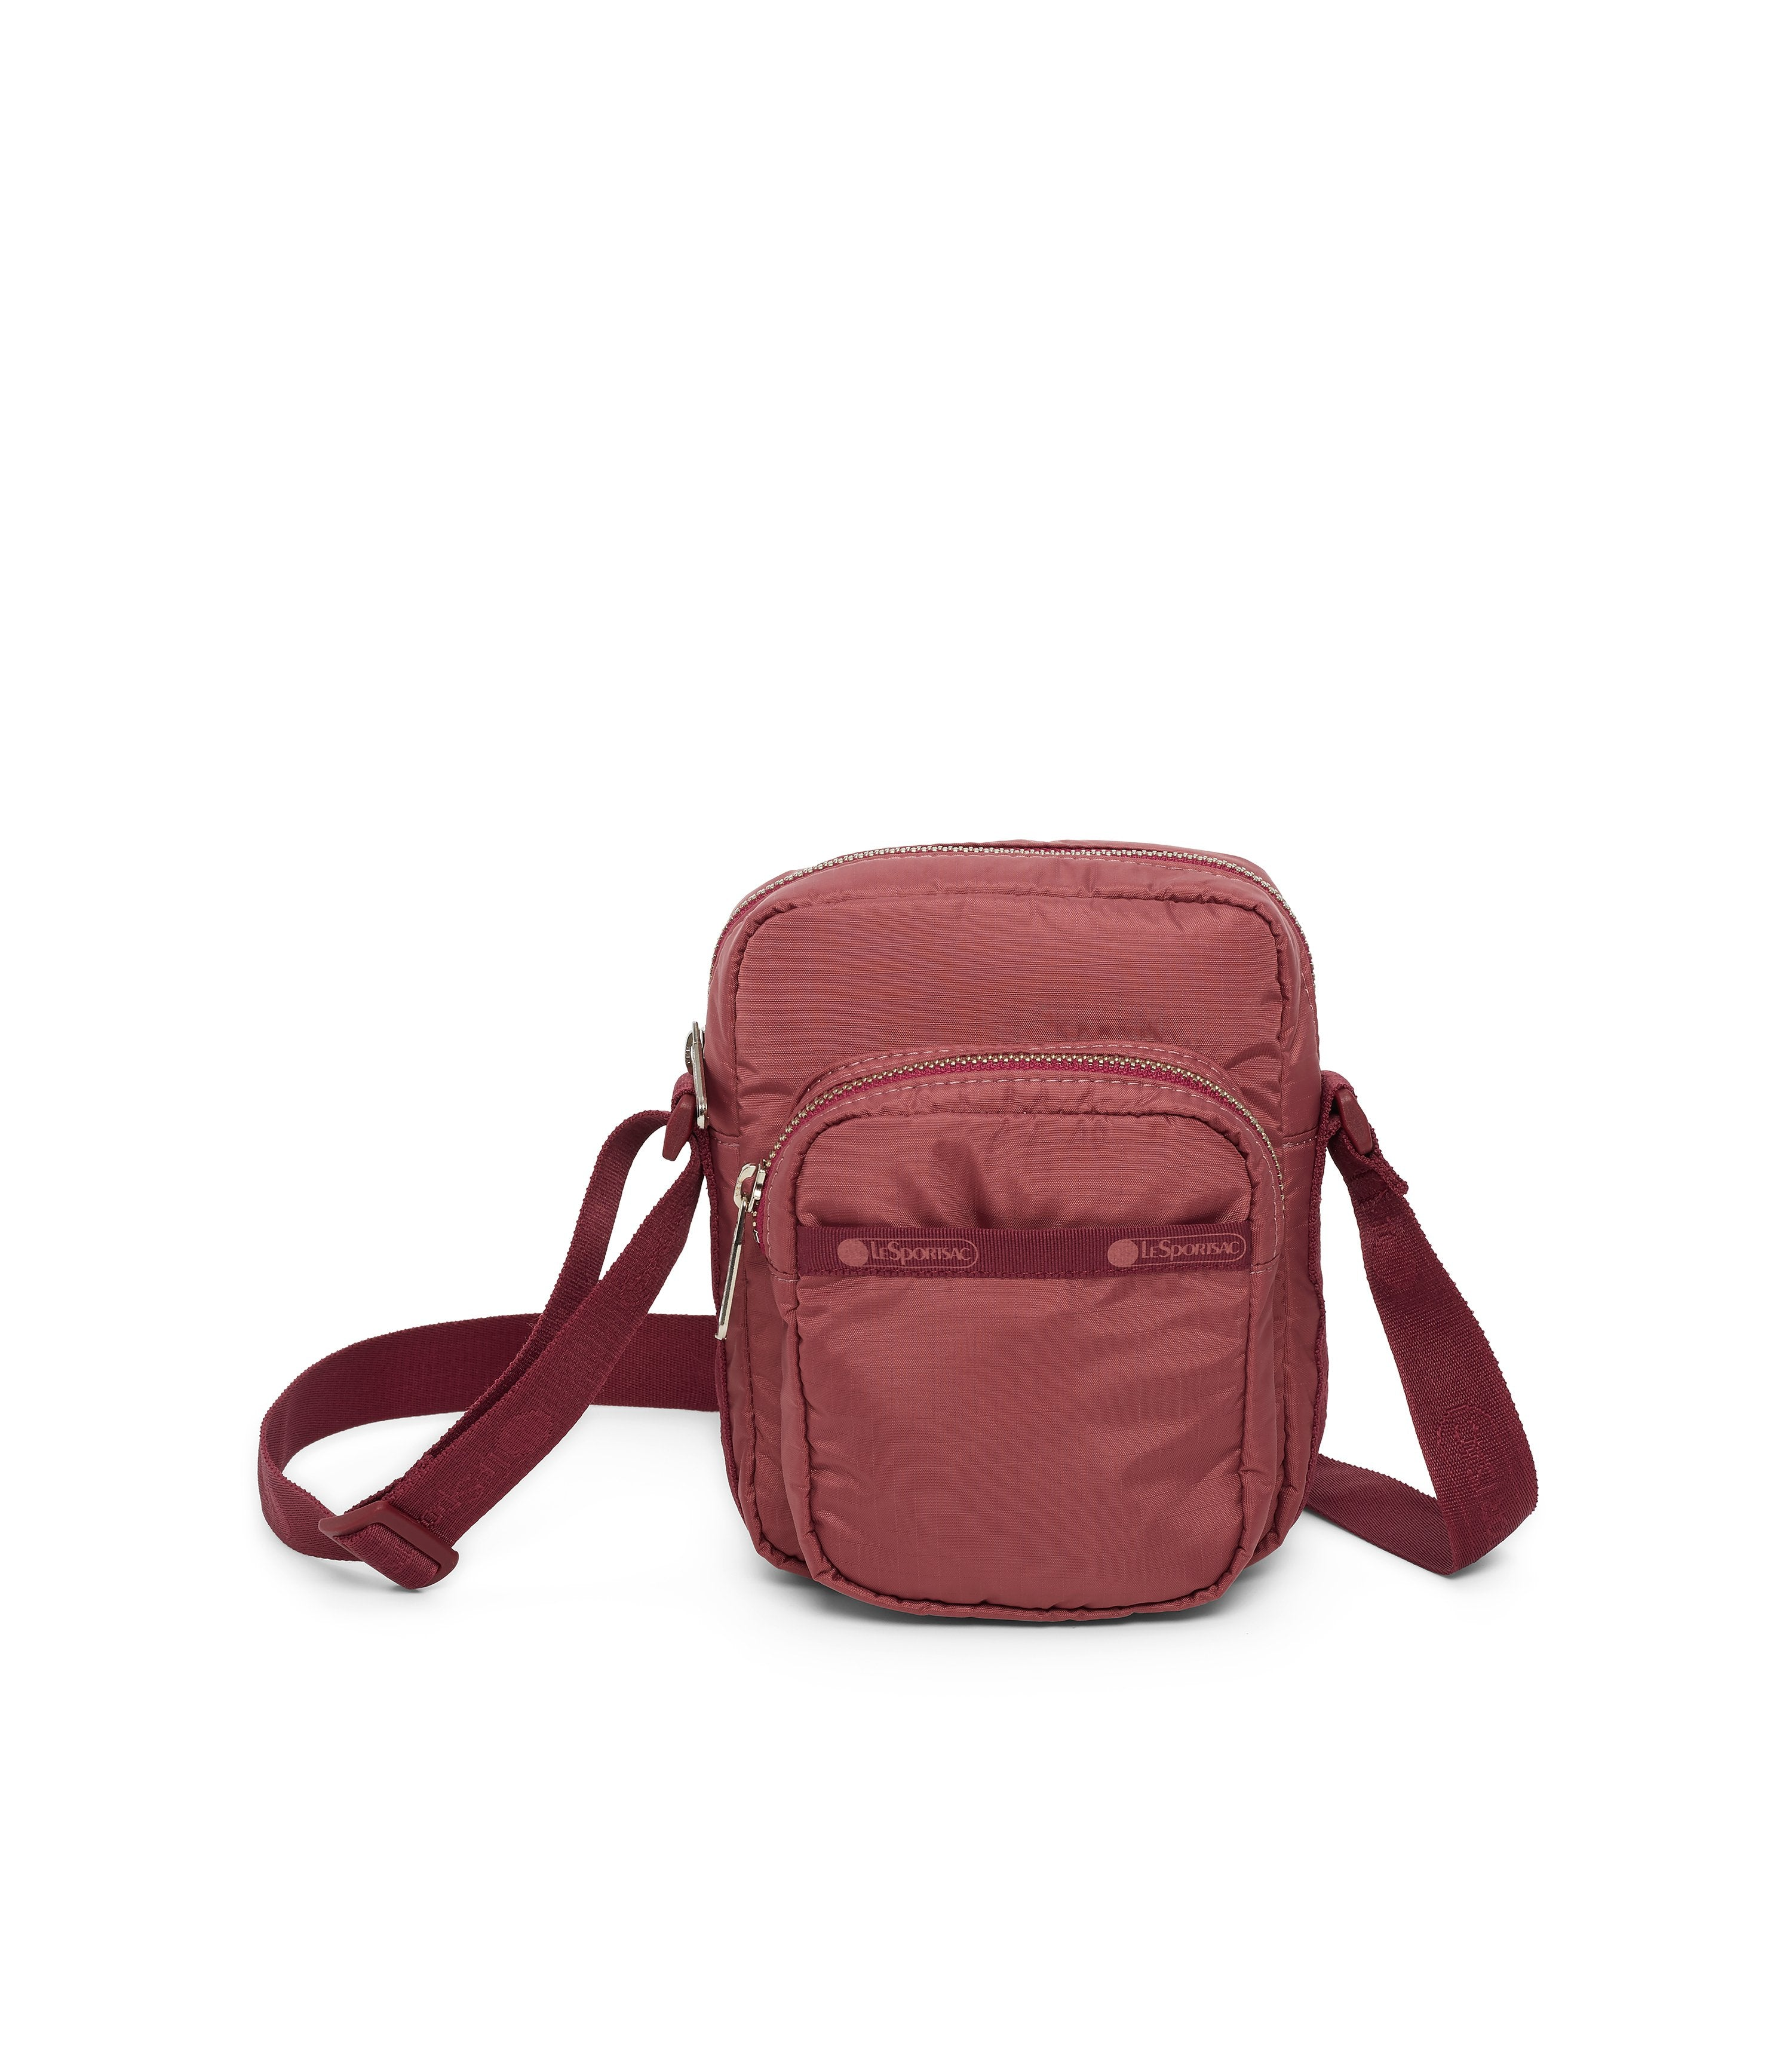 Charlie Crossbody, Handbags and Crossbody Bags, LeSportsac, Heritage Rouge